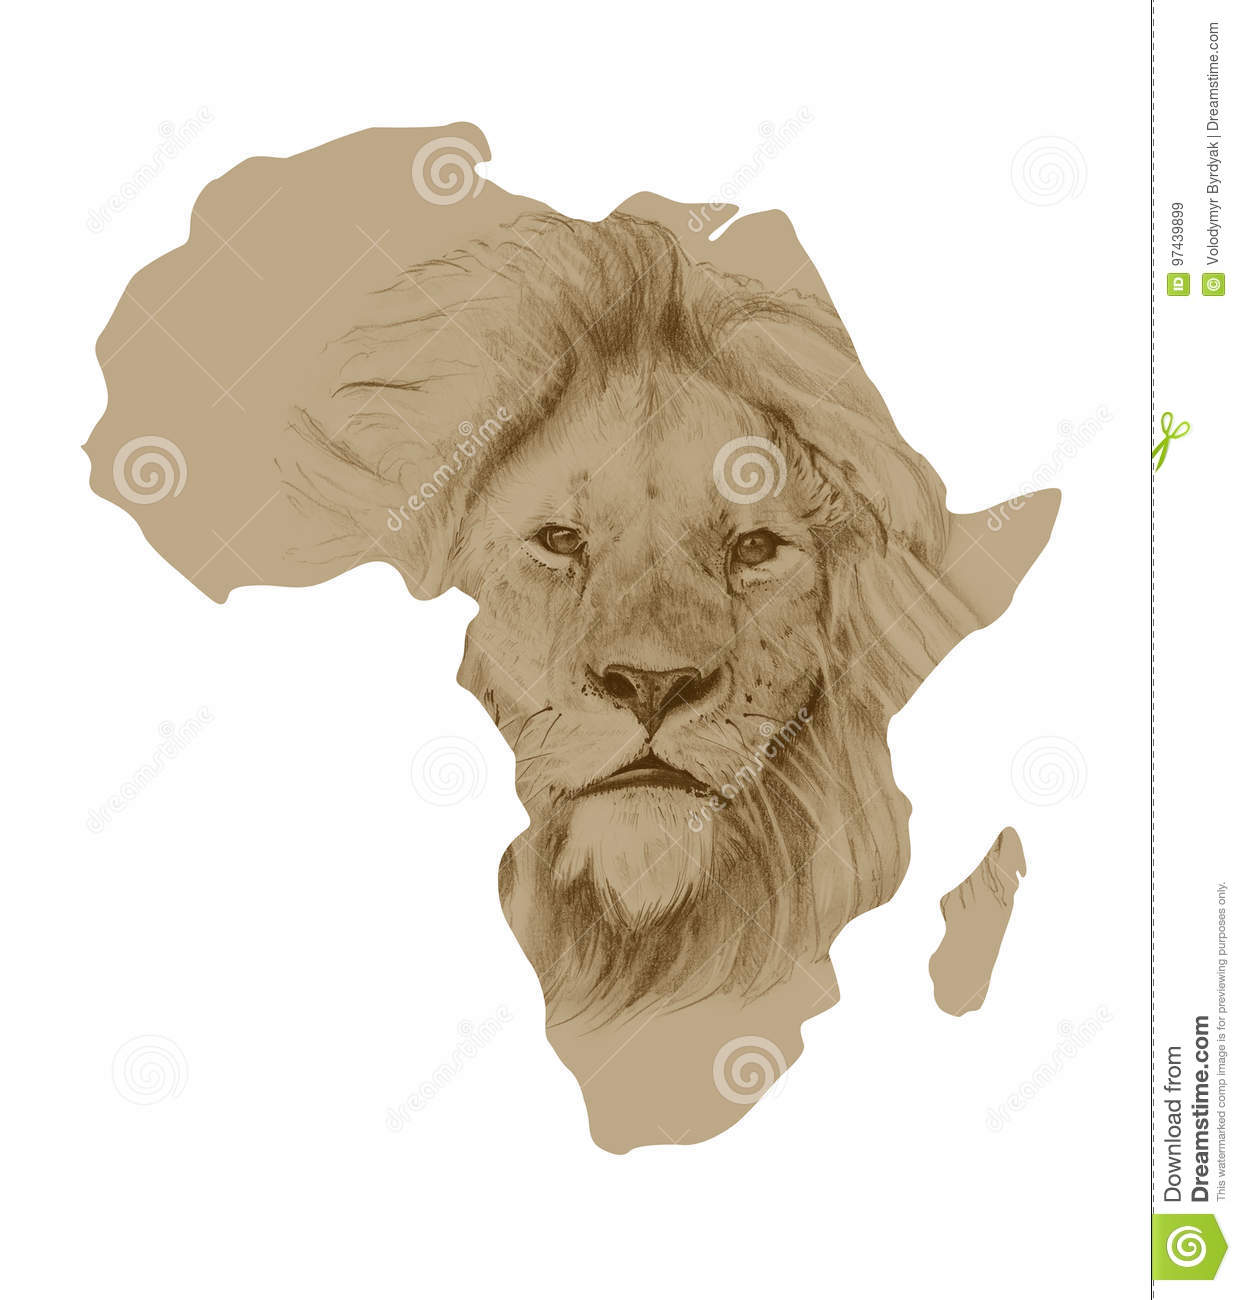 Map Of Africa With Drawn Lion Stock Illustration   Illustration of